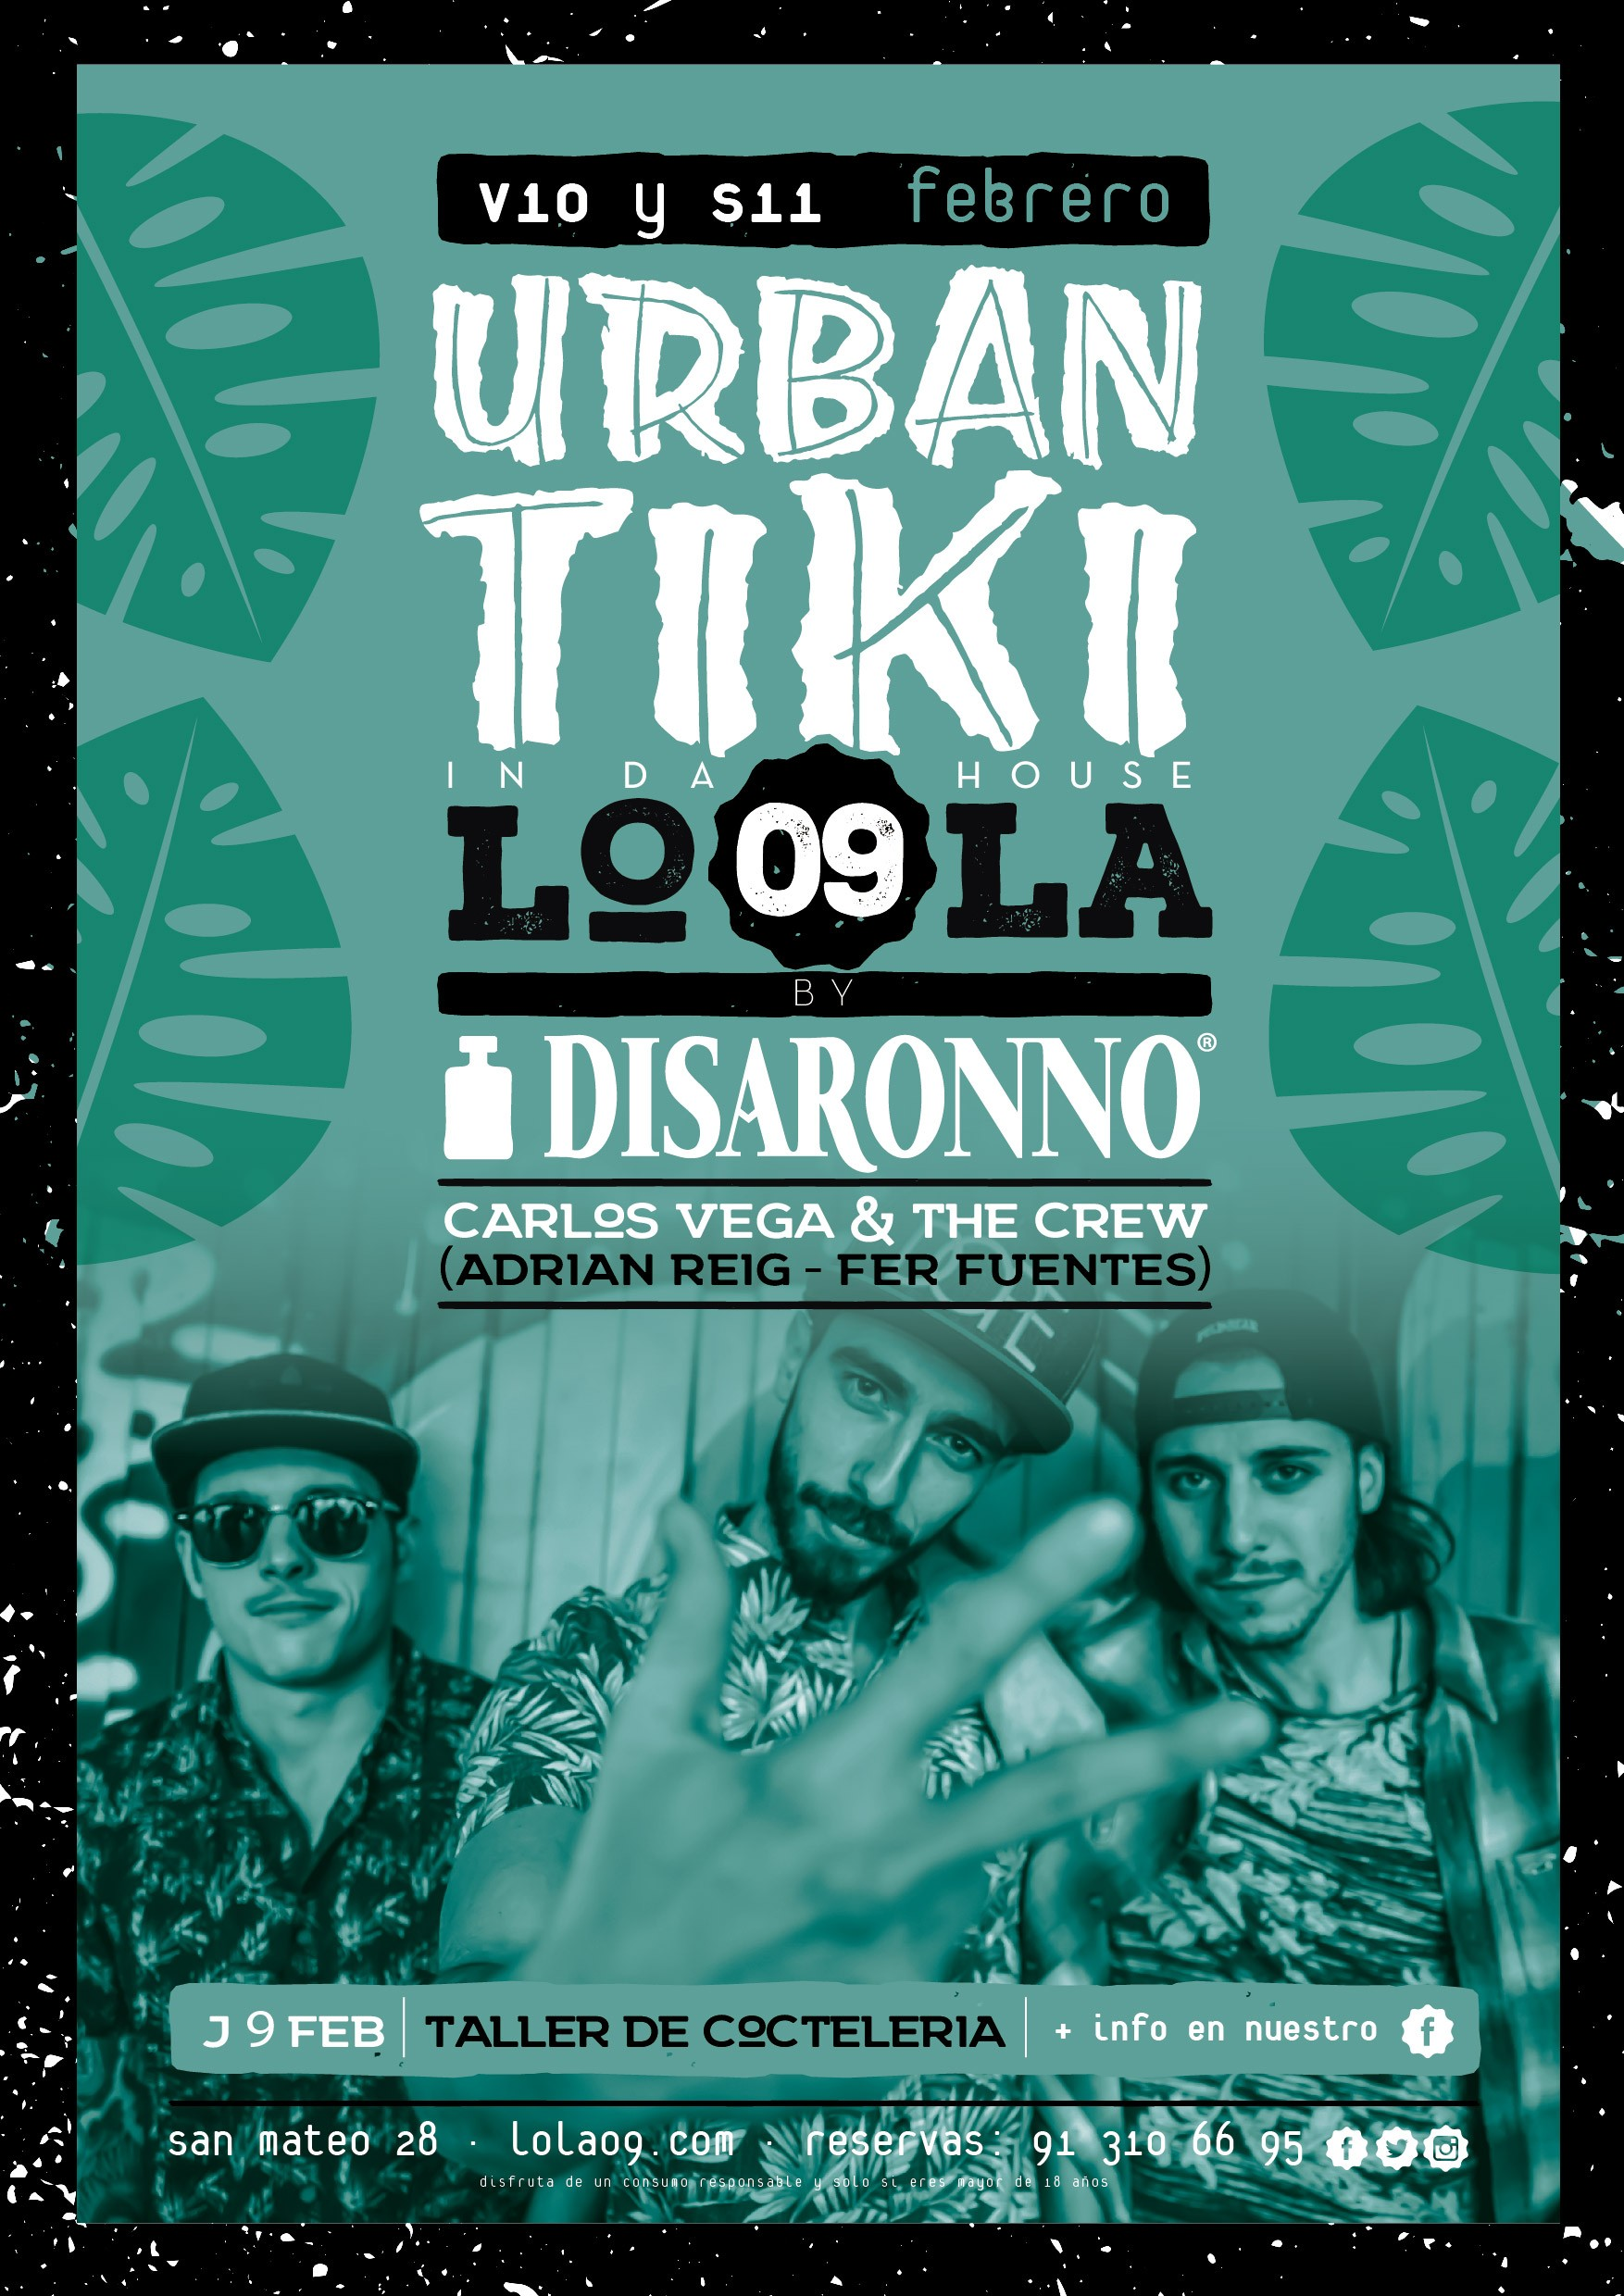 Evento Urban Tiki Disaronno